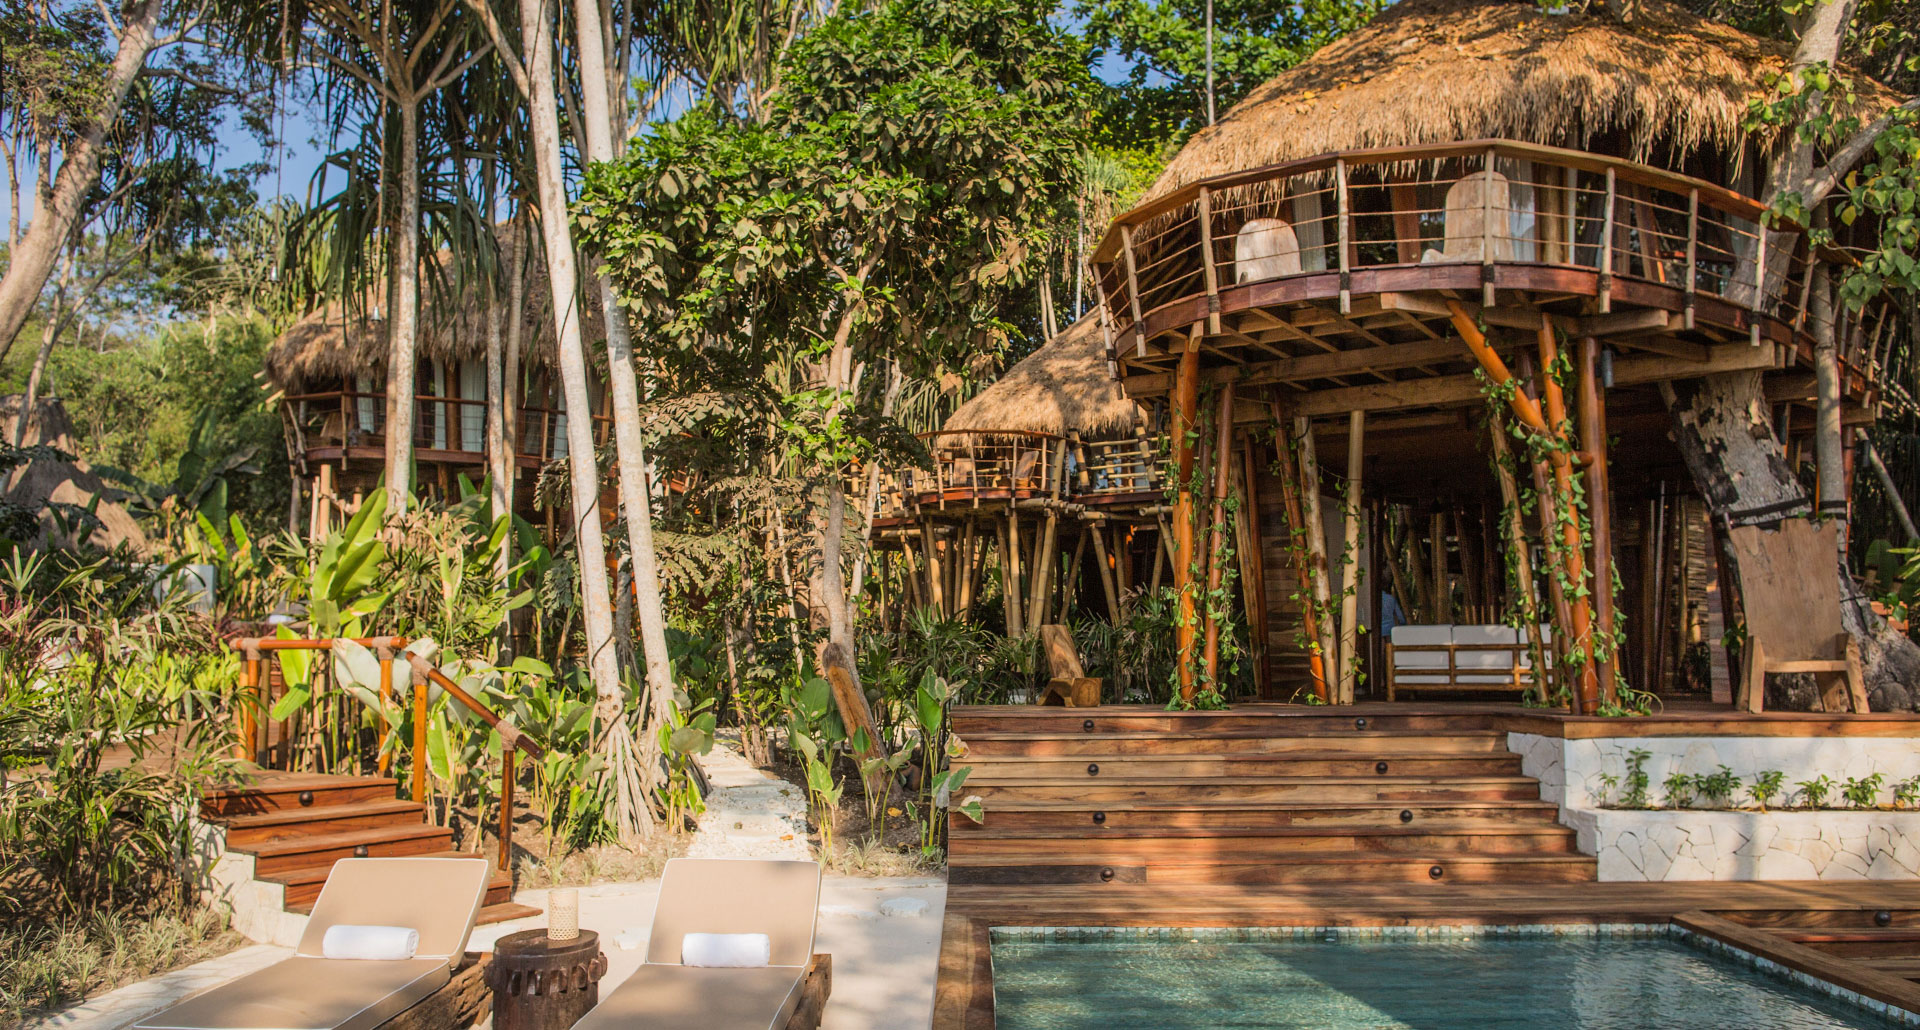 Nihi Sumba - boutique hotel in Sumba